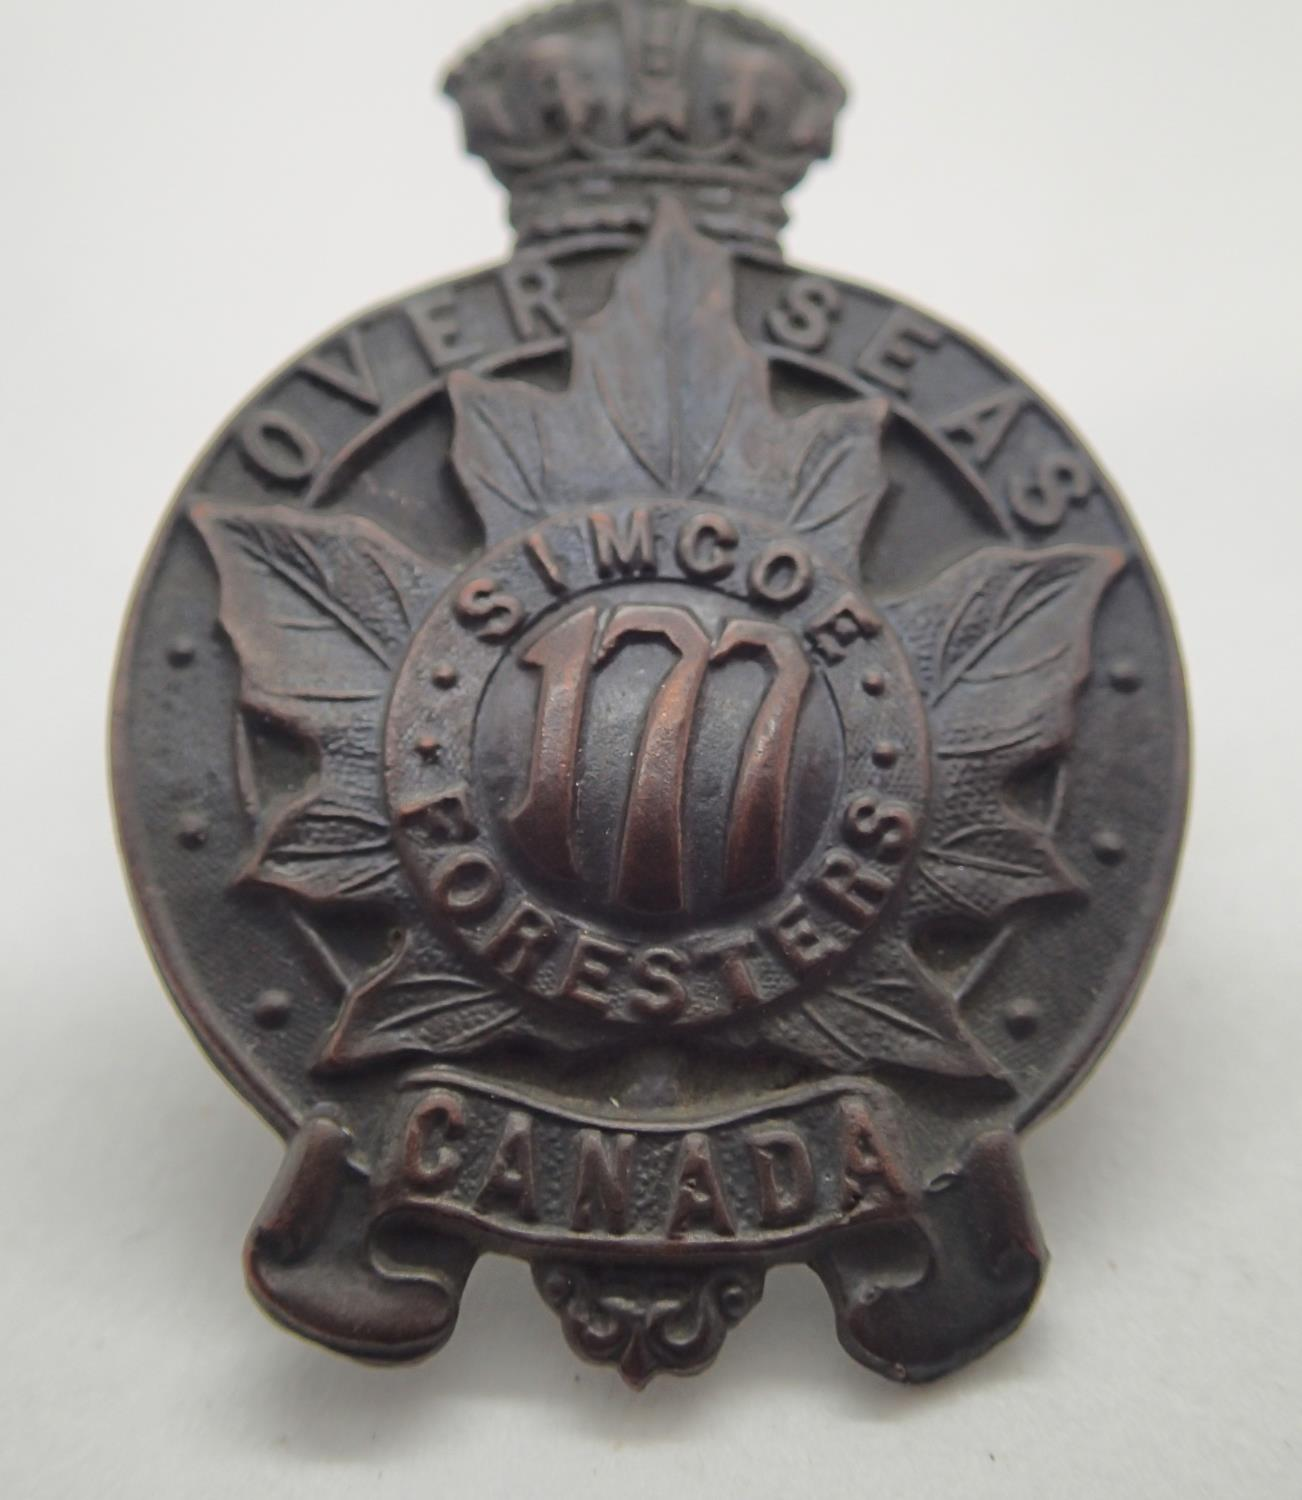 Lot 399 - WWI type CEF cap badge 177th battalion Simcoe Foresters. P&P Group 1 (£14+VAT for the first lot